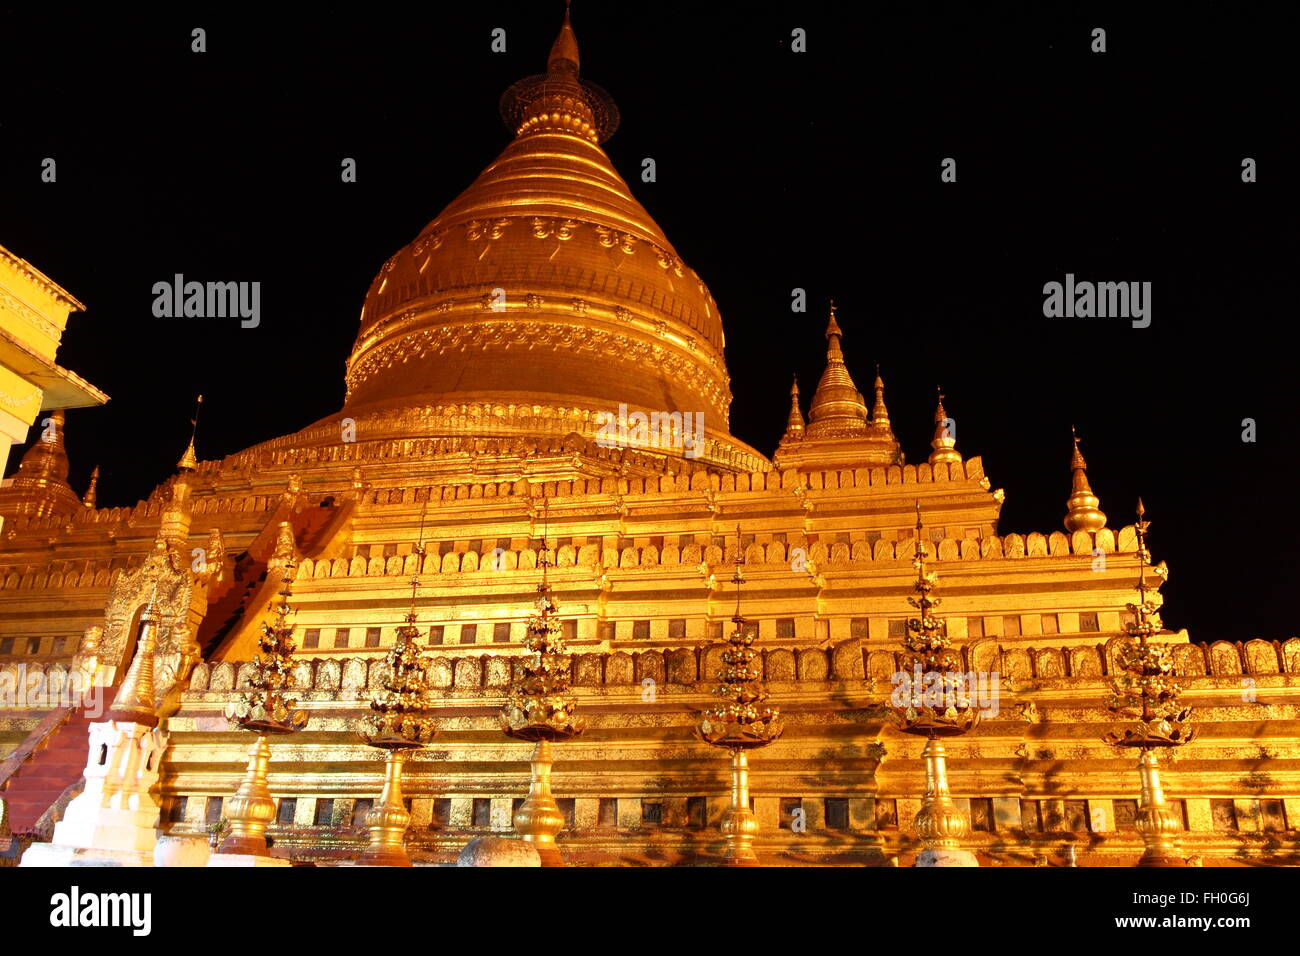 Shwezigon , old Buddhist temples and pagodas in Bagan, Myanmar Stock Photo